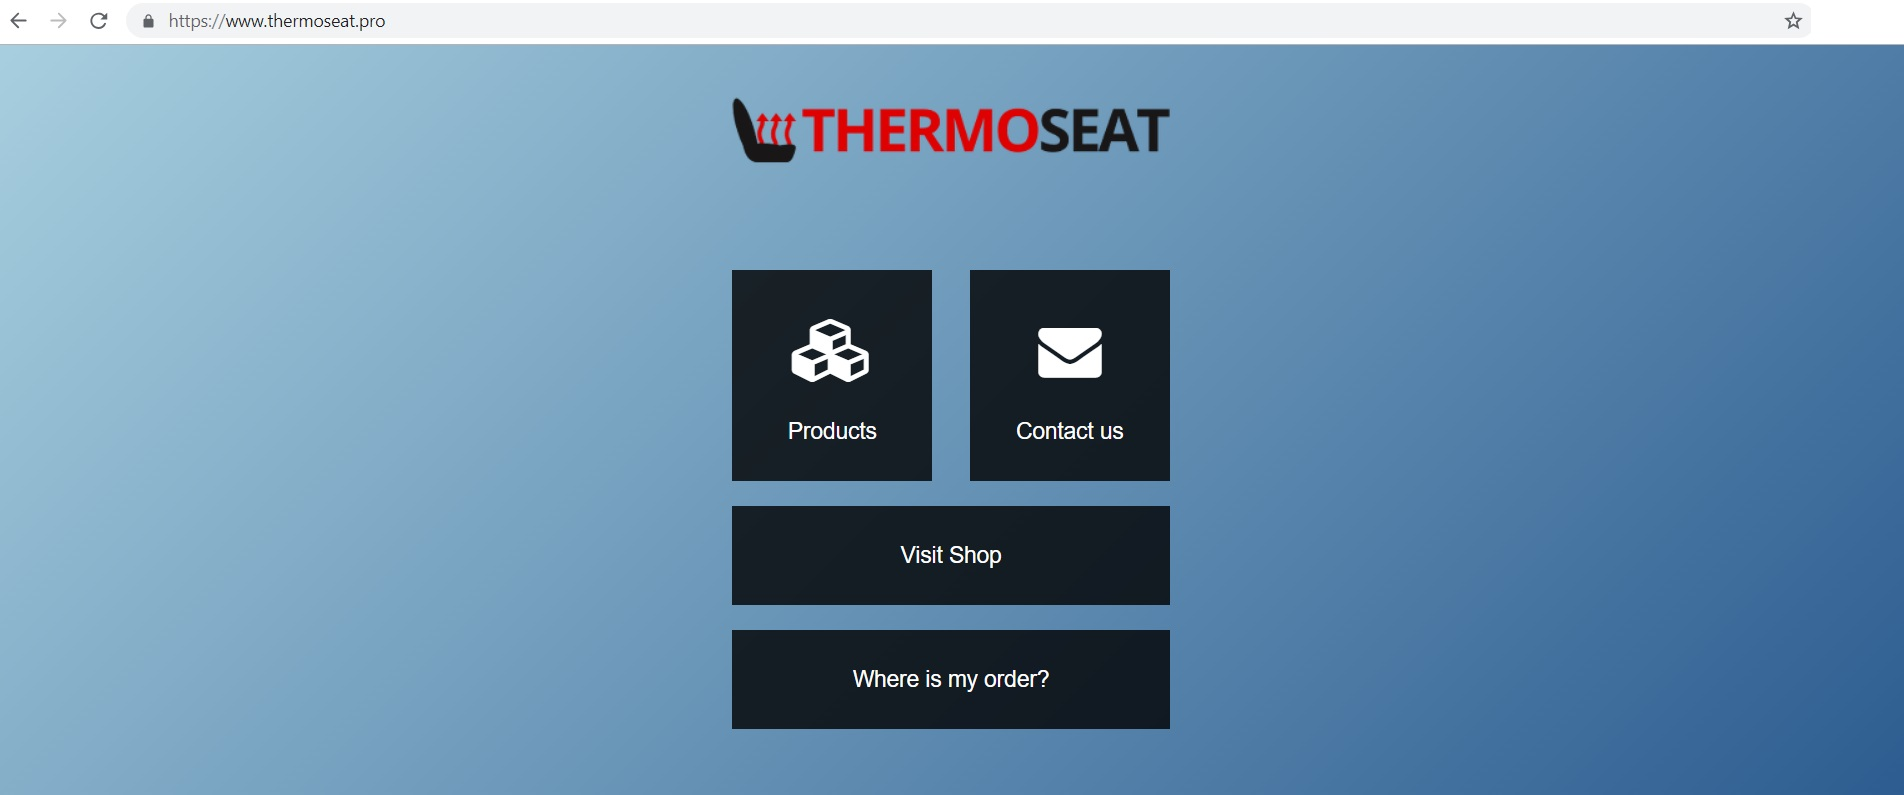 thermoseat.pro